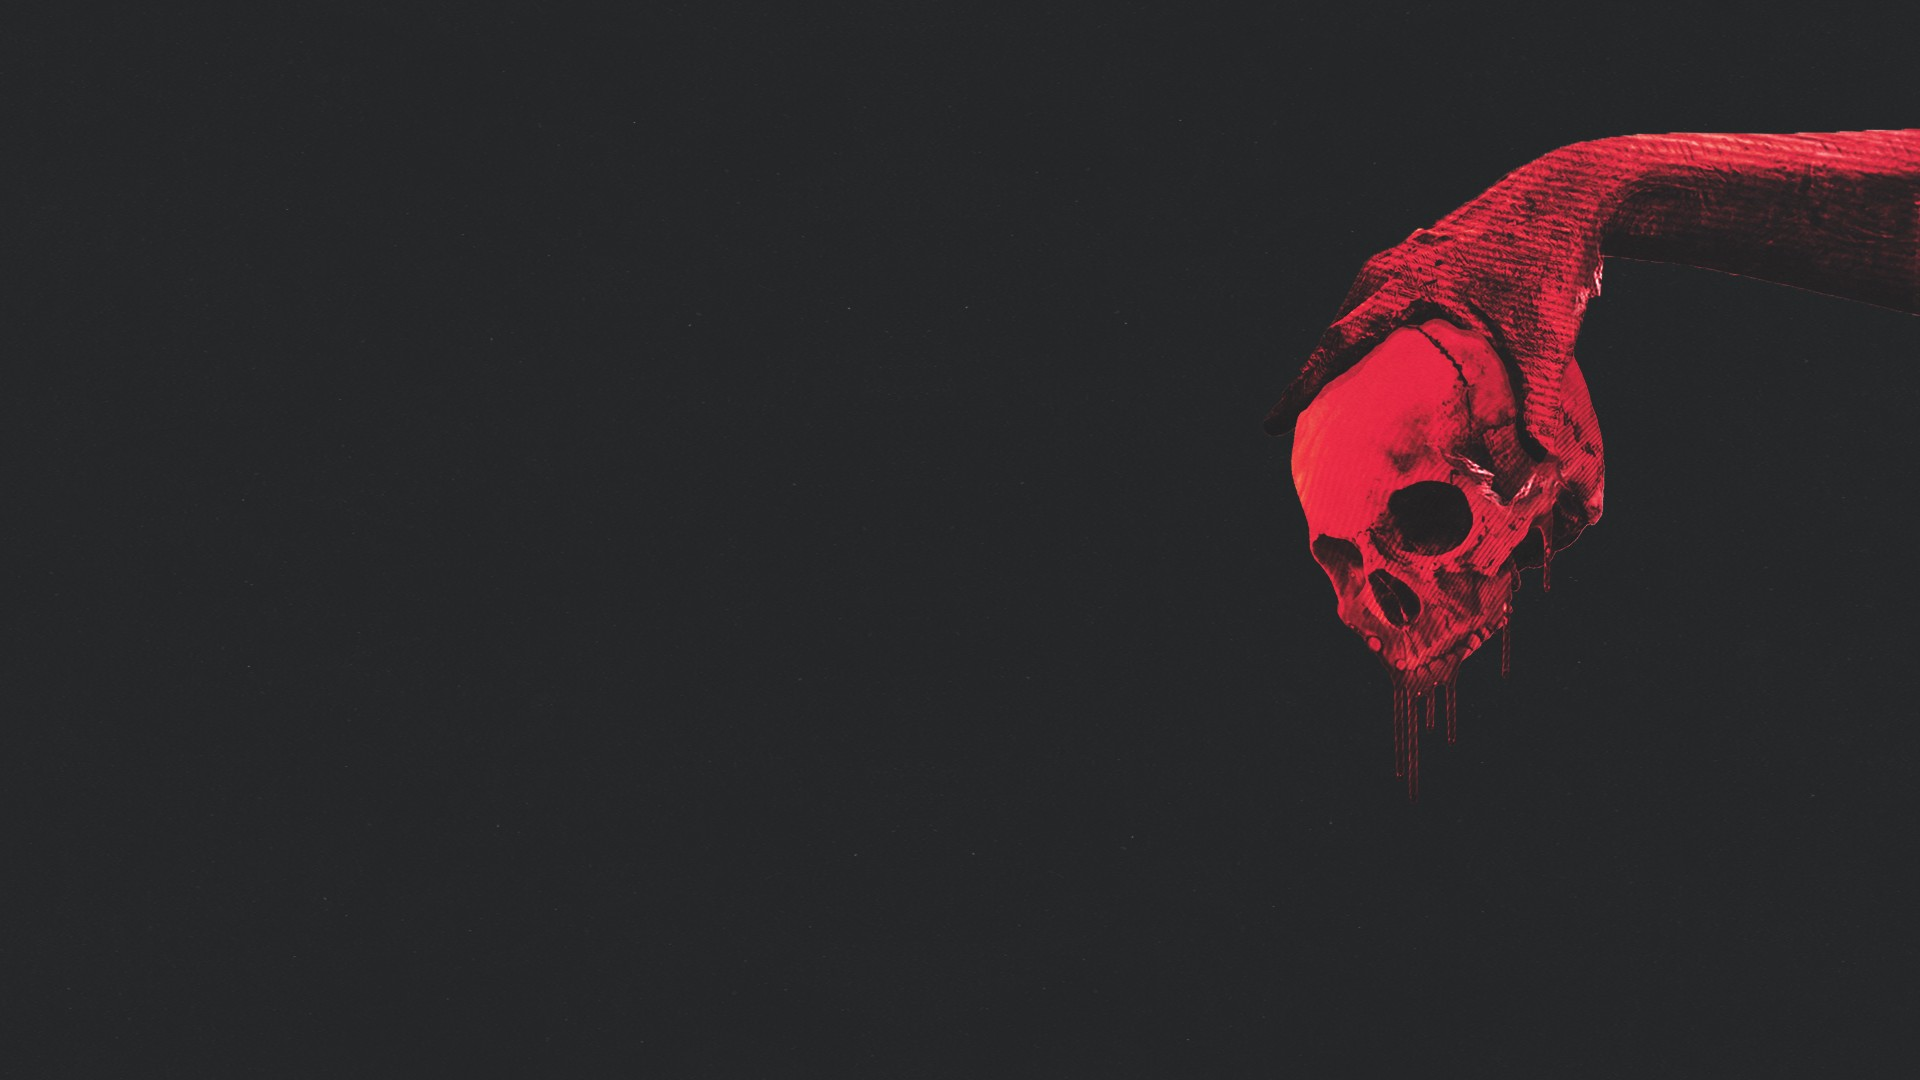 Black And Red Aesthetic Wallpaper Desktop Download Share Or Upload Your Own One